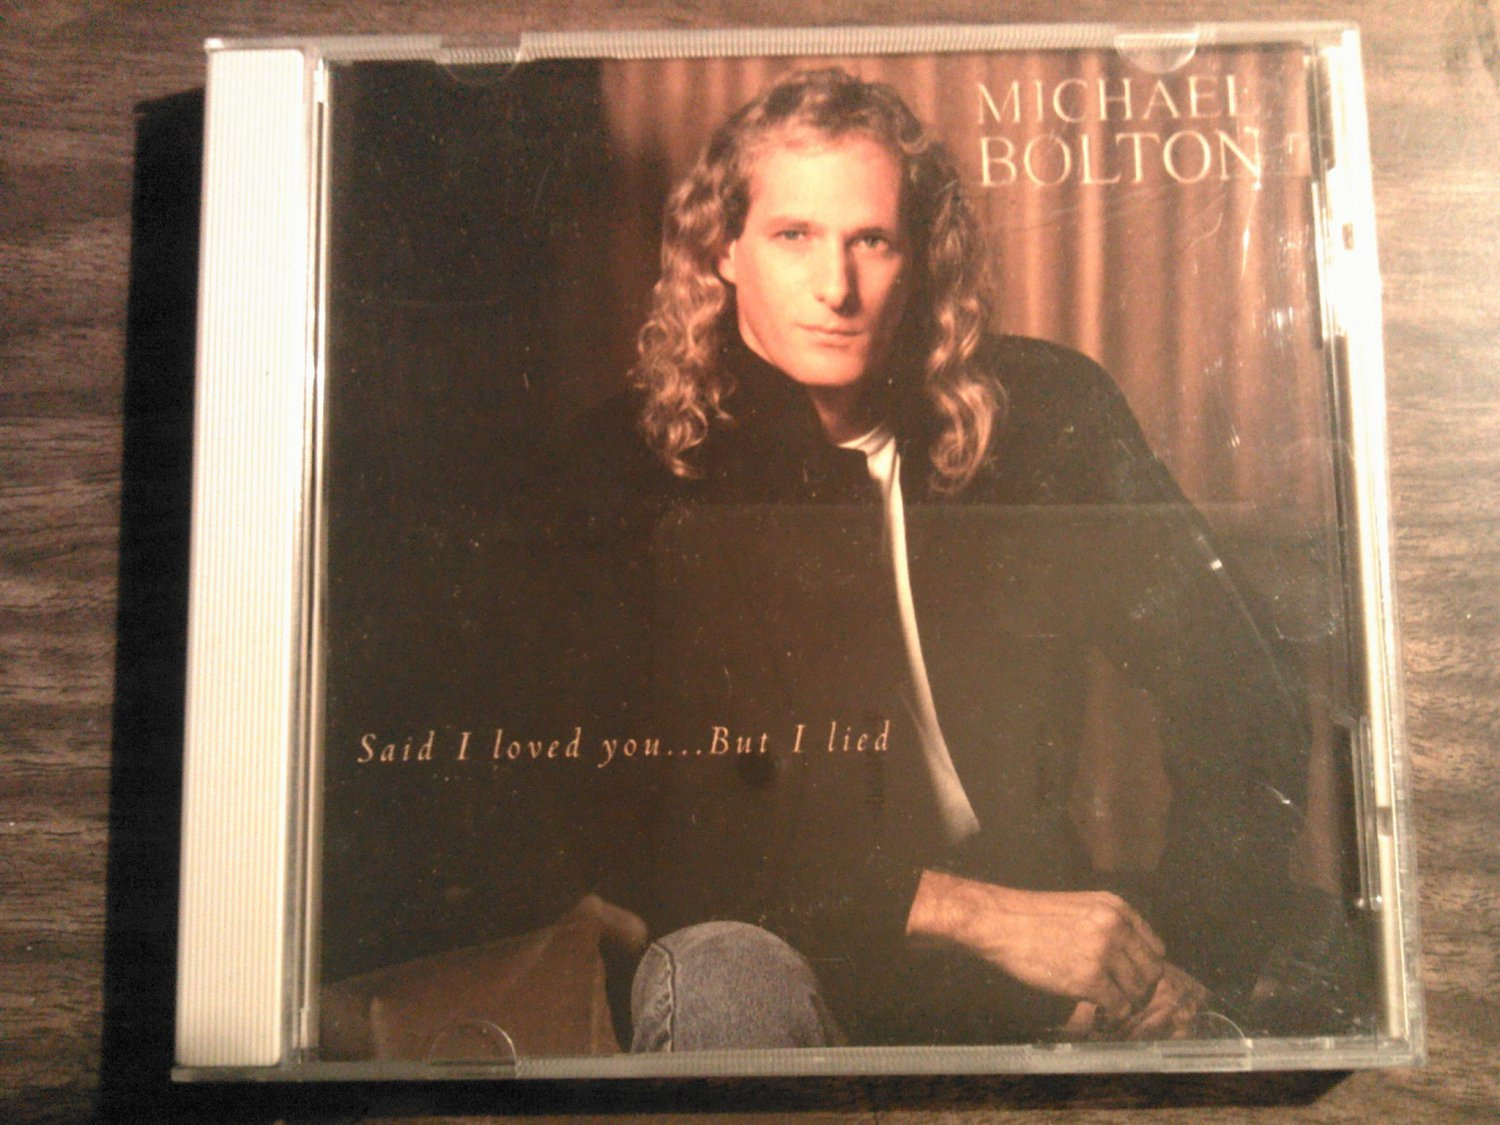 CD MICHAEL BOLTON Said I Loved You But I Lied 2 tracks single